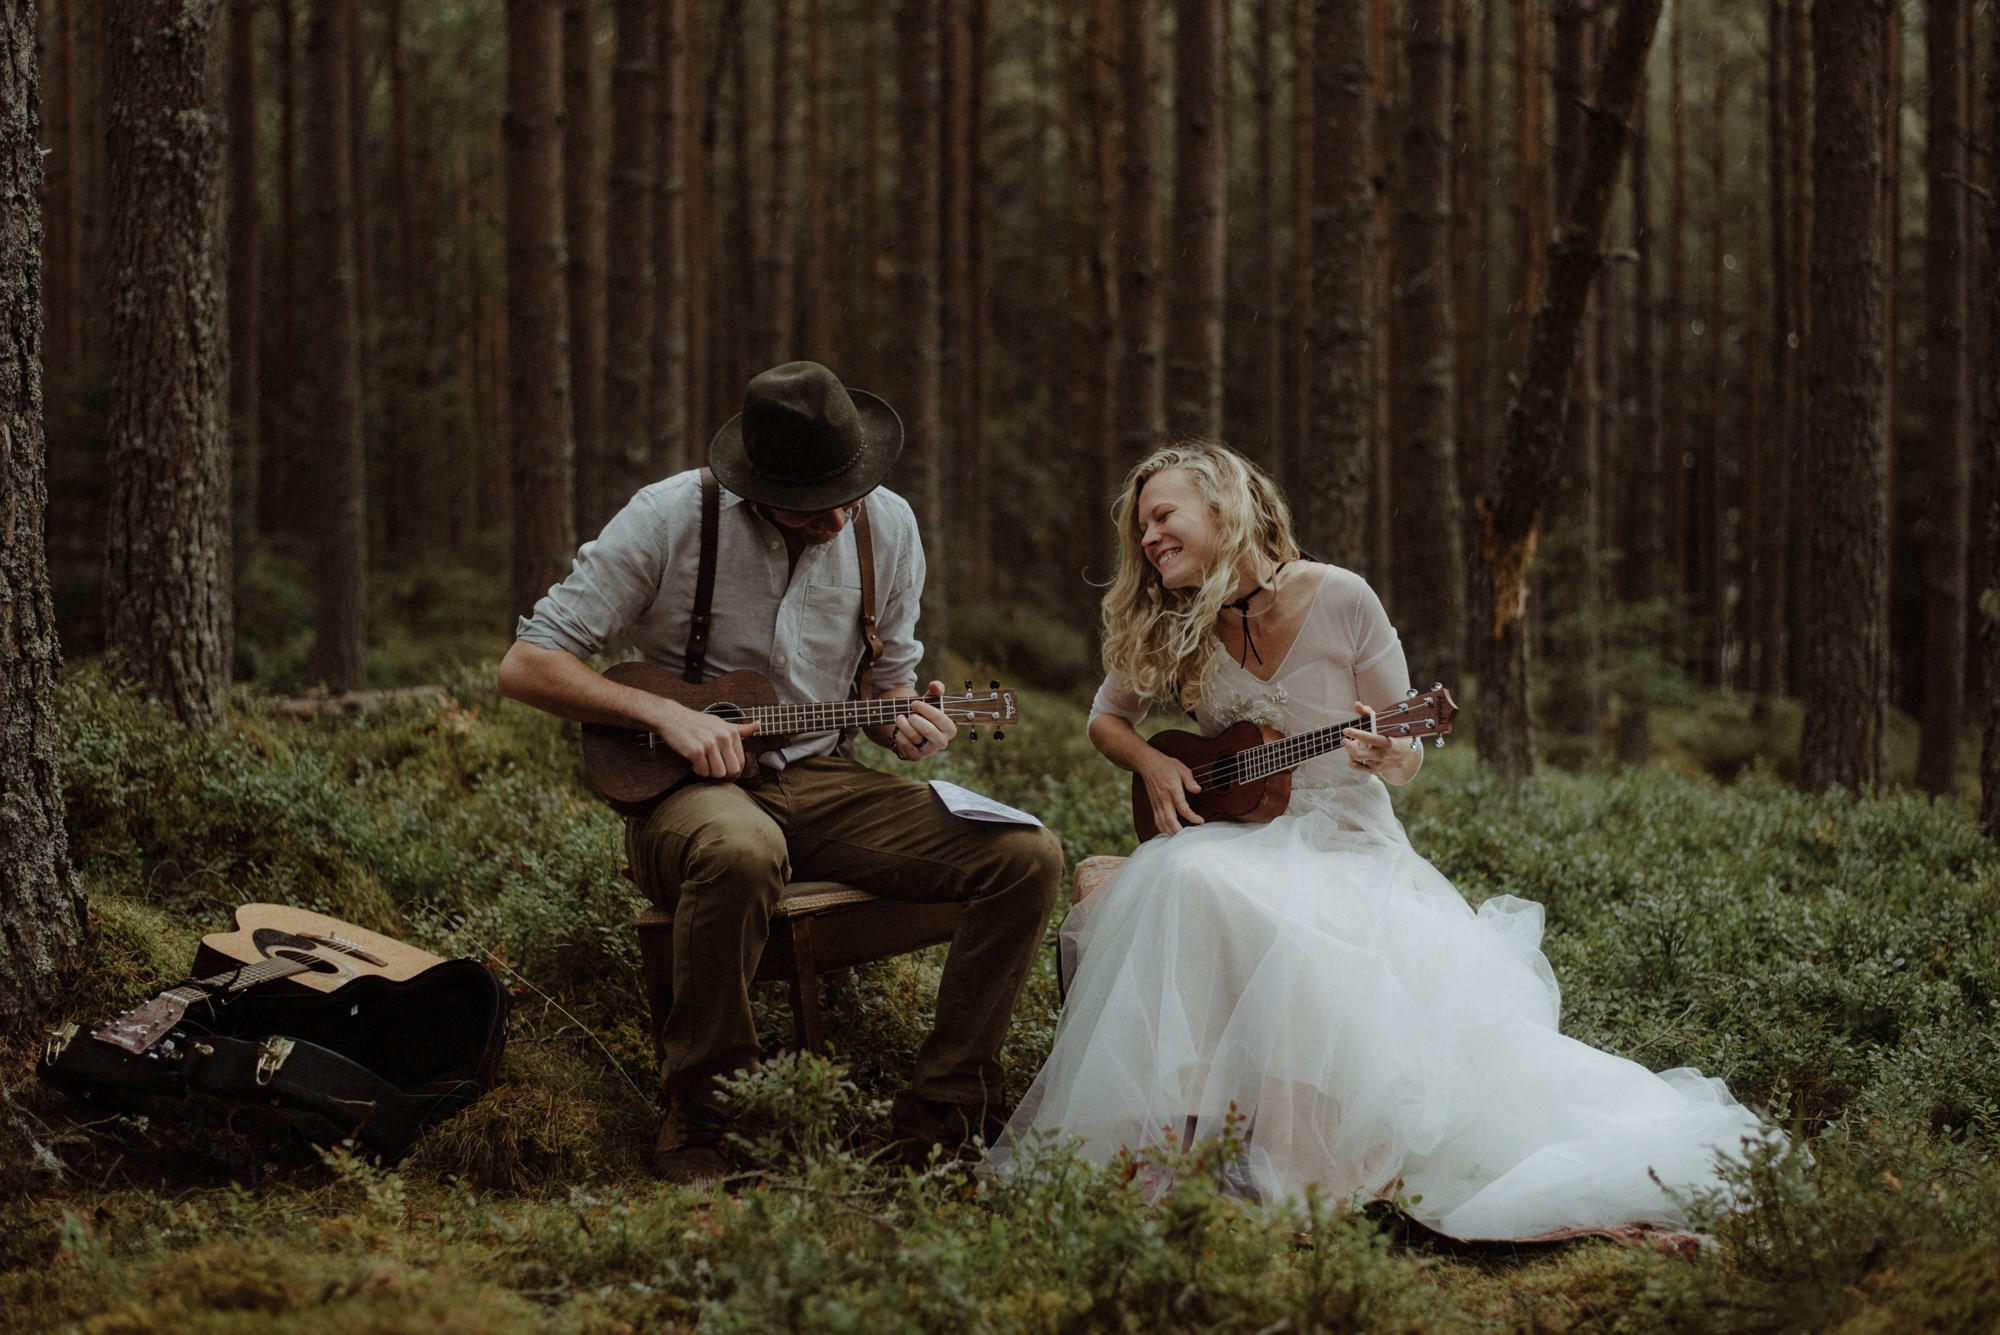 Couple shares their love for music and each other - photo by The Kitcheners